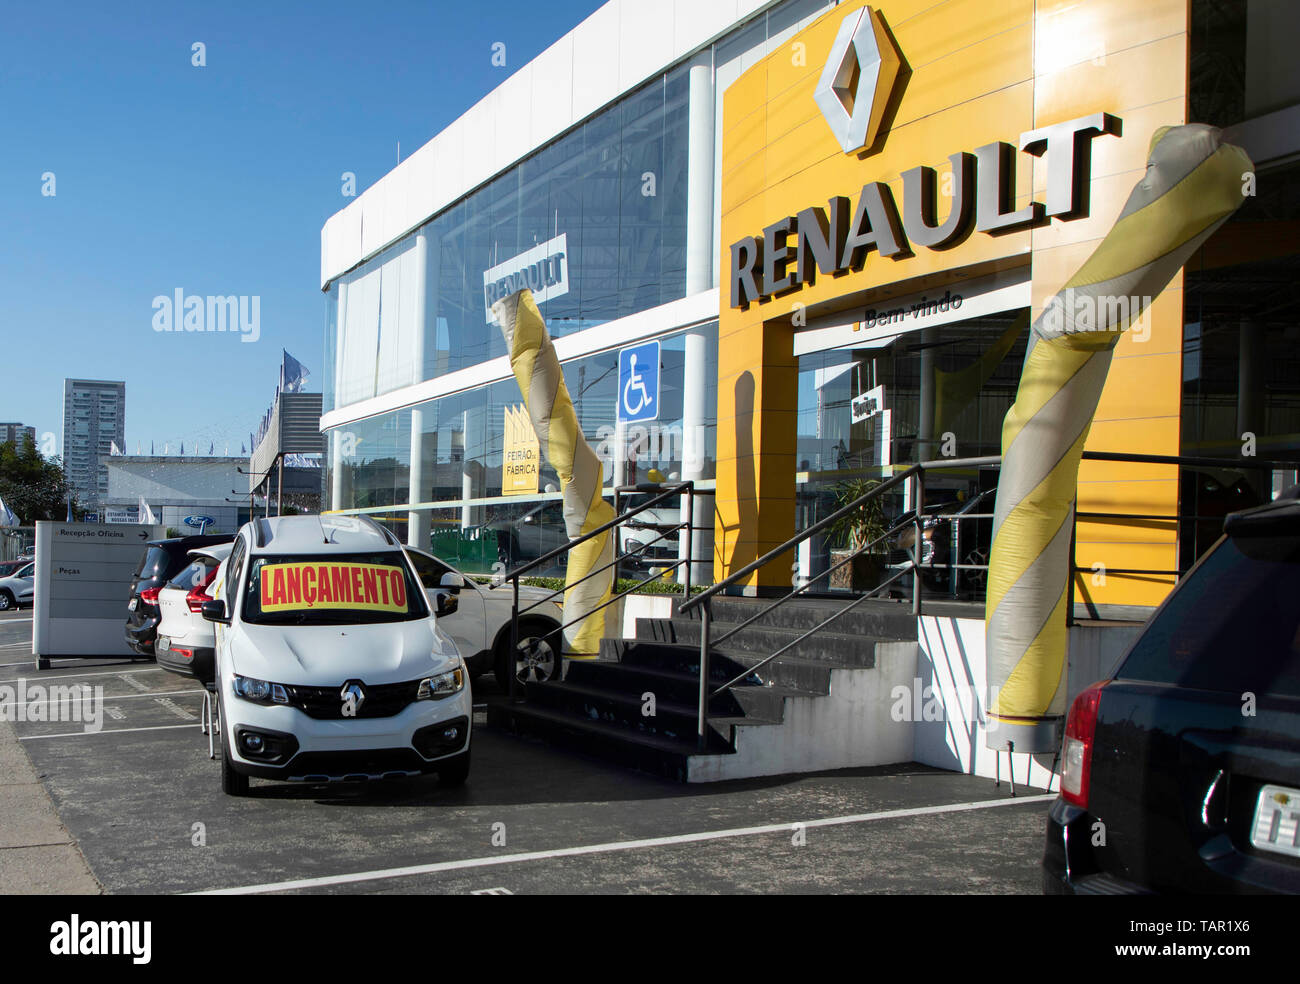 SÃO PAULO, SP - 27.05.2019: FIAT E RENAULT PODEM SE JUNTAR - Renault logo is seen in the company's concensionaire in the south of the capital of São Paulo on the afternof this Monday (27). The company is studyingying merger proposal with Fiat Chrysler Automobiles (FCA). (Photo: Bruno Rocha/Fotoarena) Stock Photo